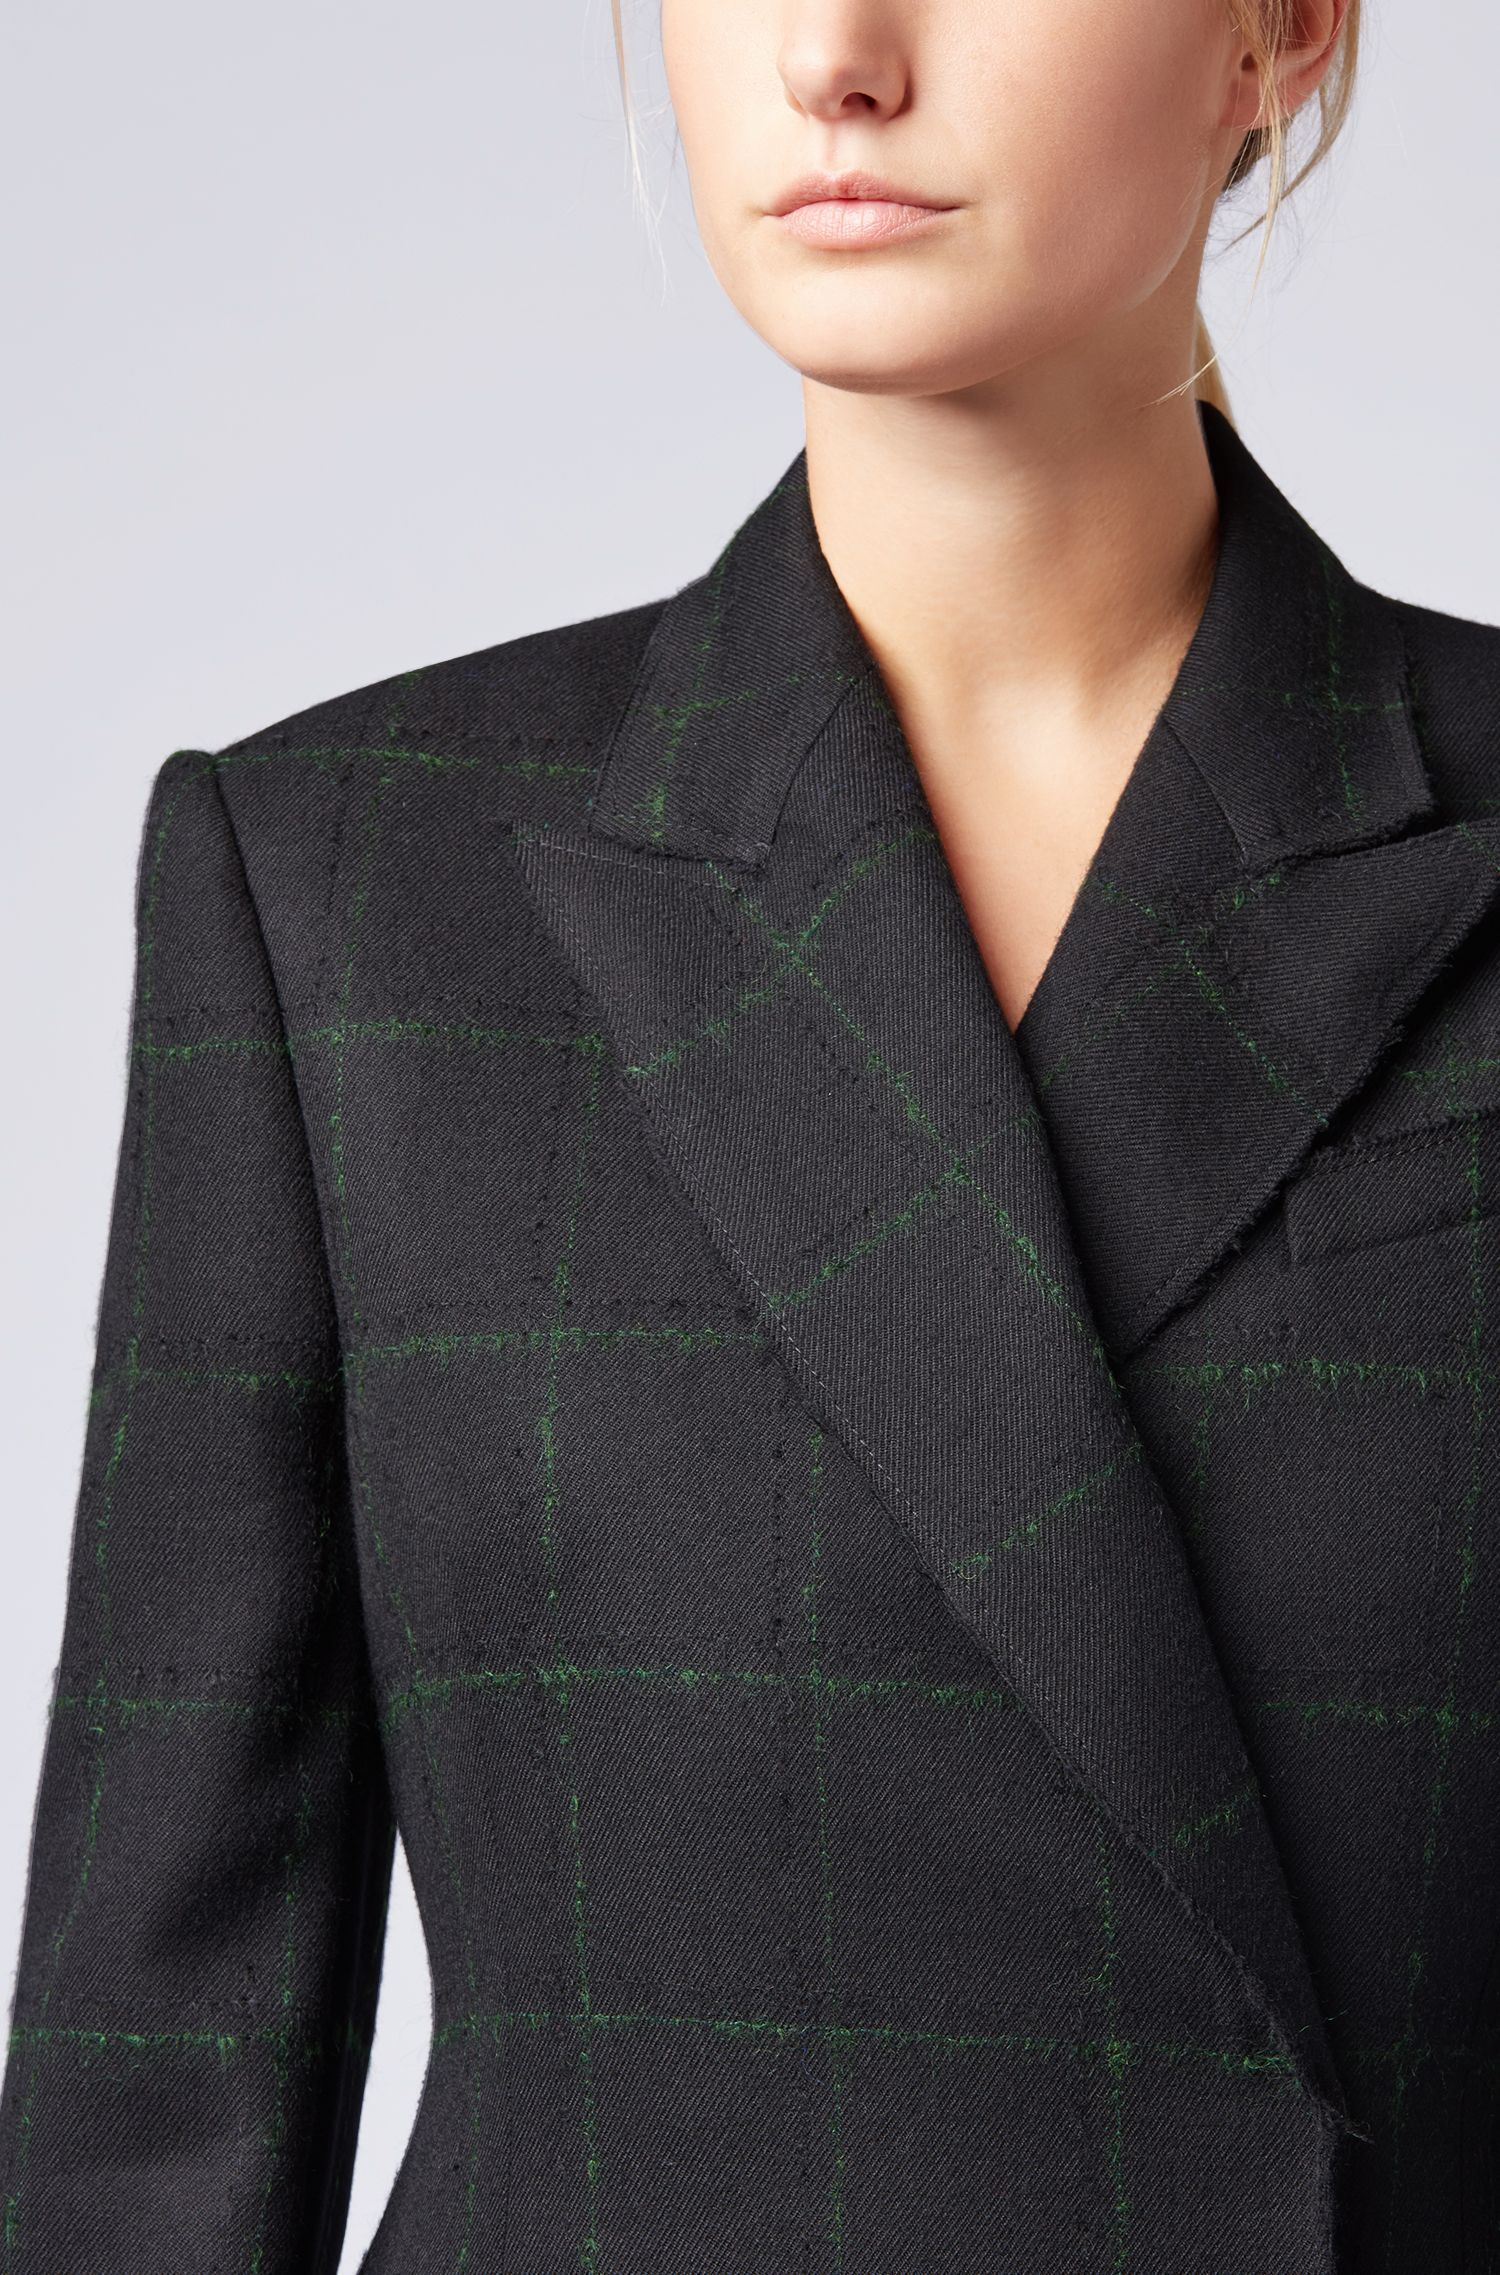 Gallery Collection double-breasted coat in a checkered wool blend, Patterned